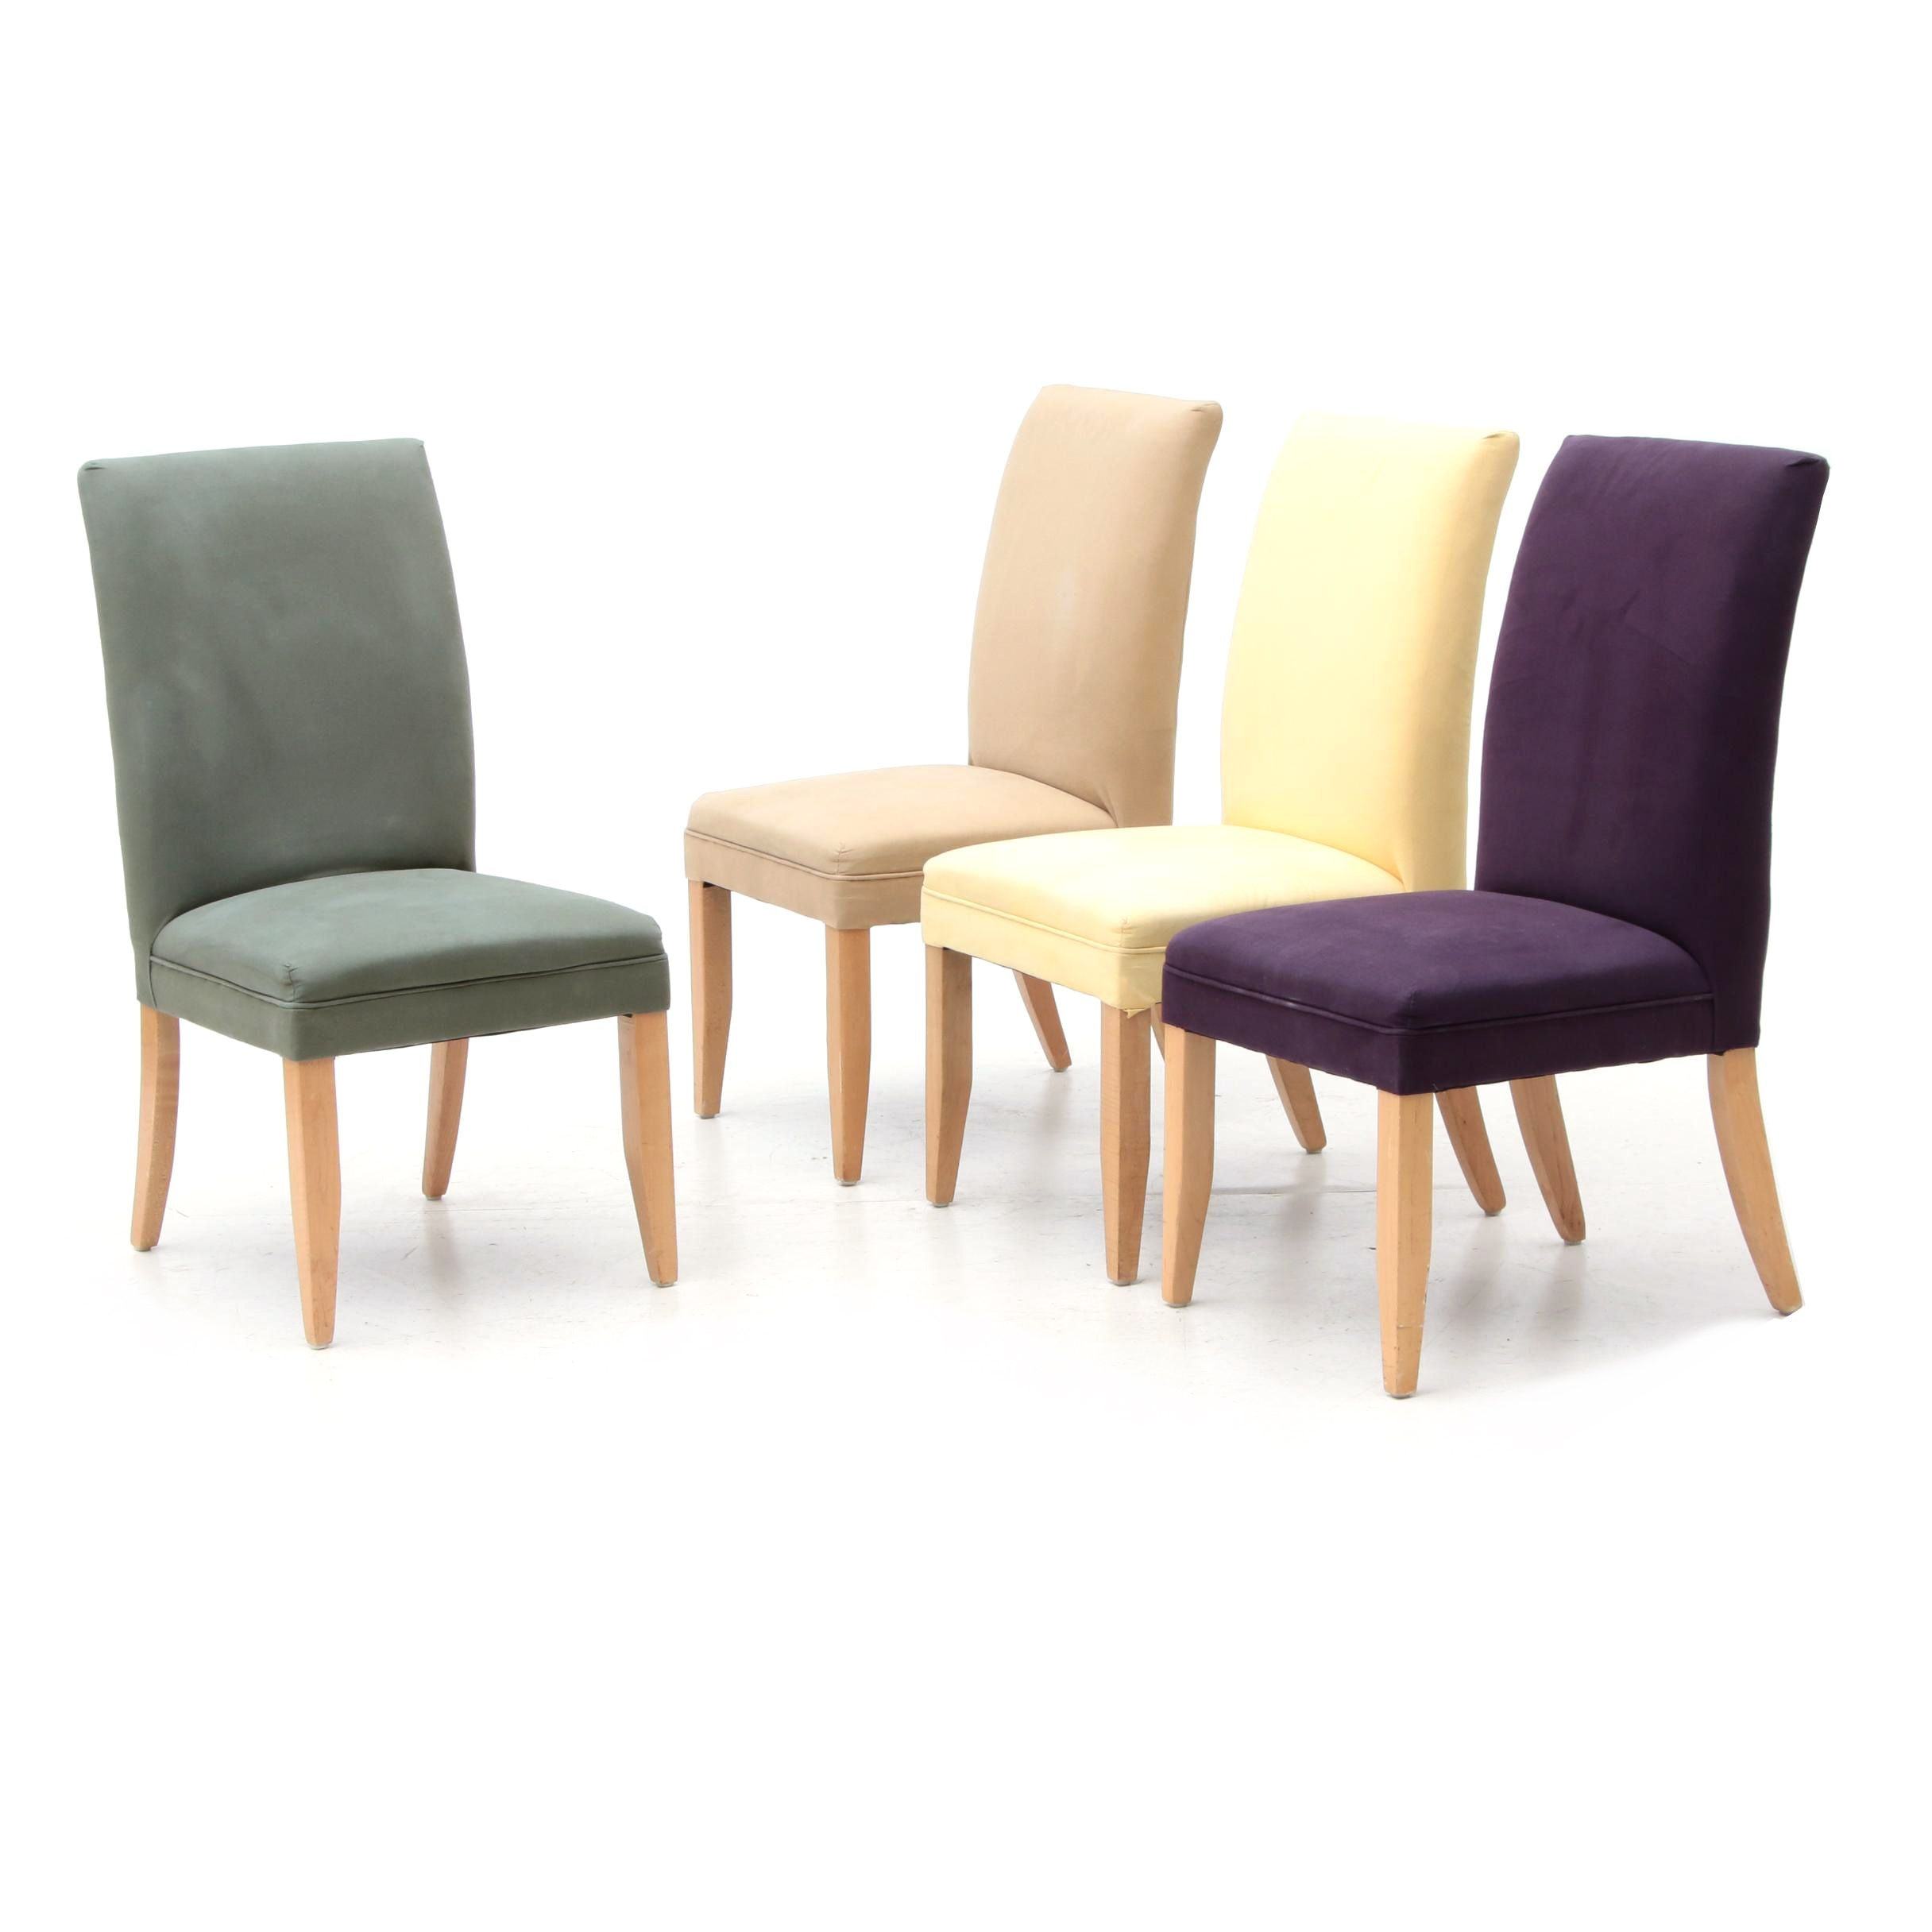 Set of Upholstered Side Chairs